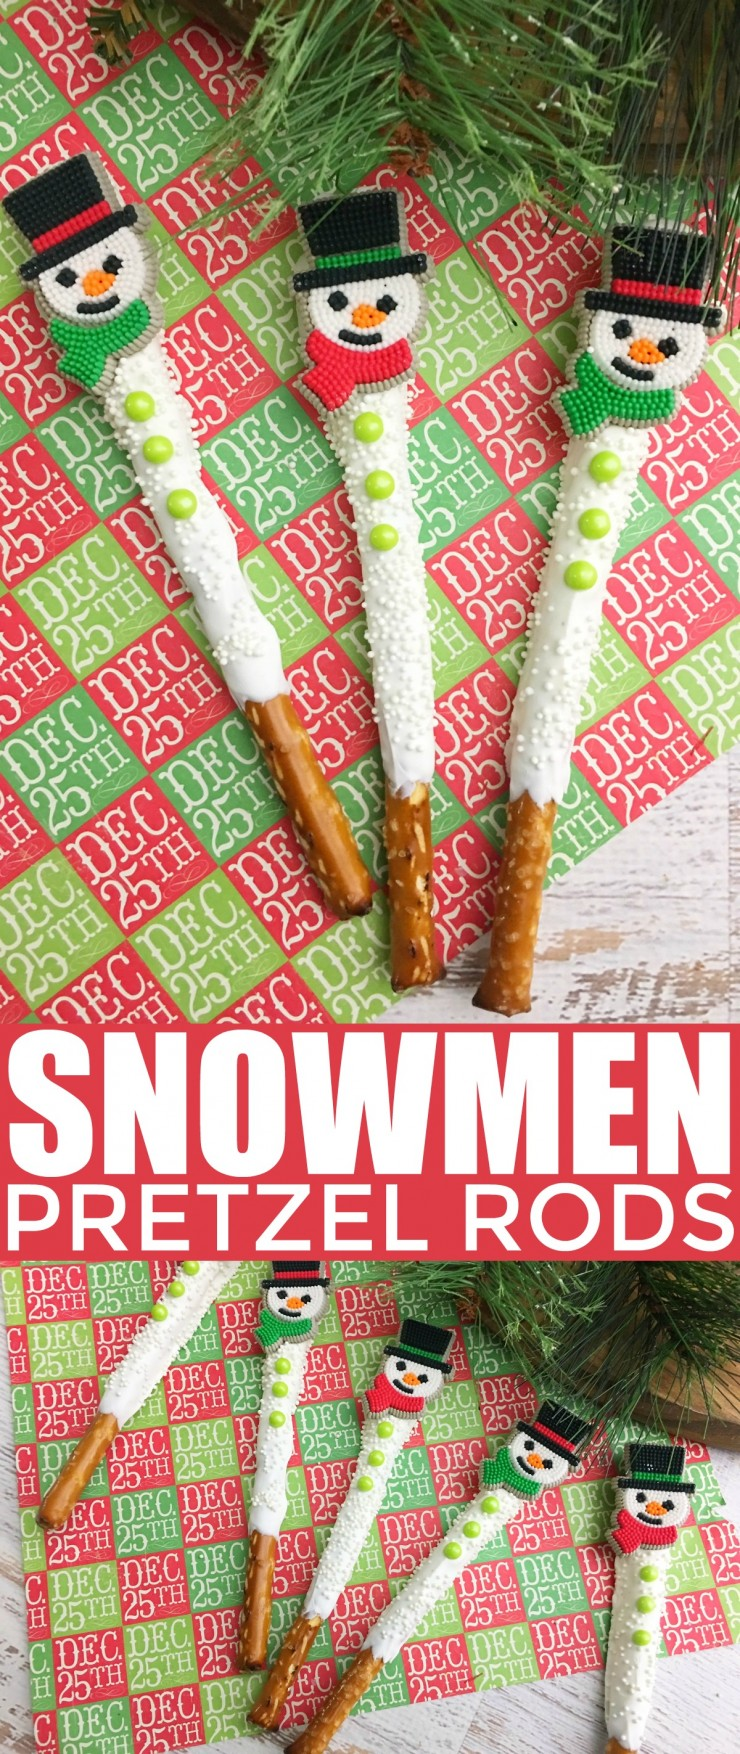 These snowmen pretzel rods are a fun and festive holiday treat. These sweet and salty snacks are great for Christmas parties and super easy to make. A sure way to impress guests!